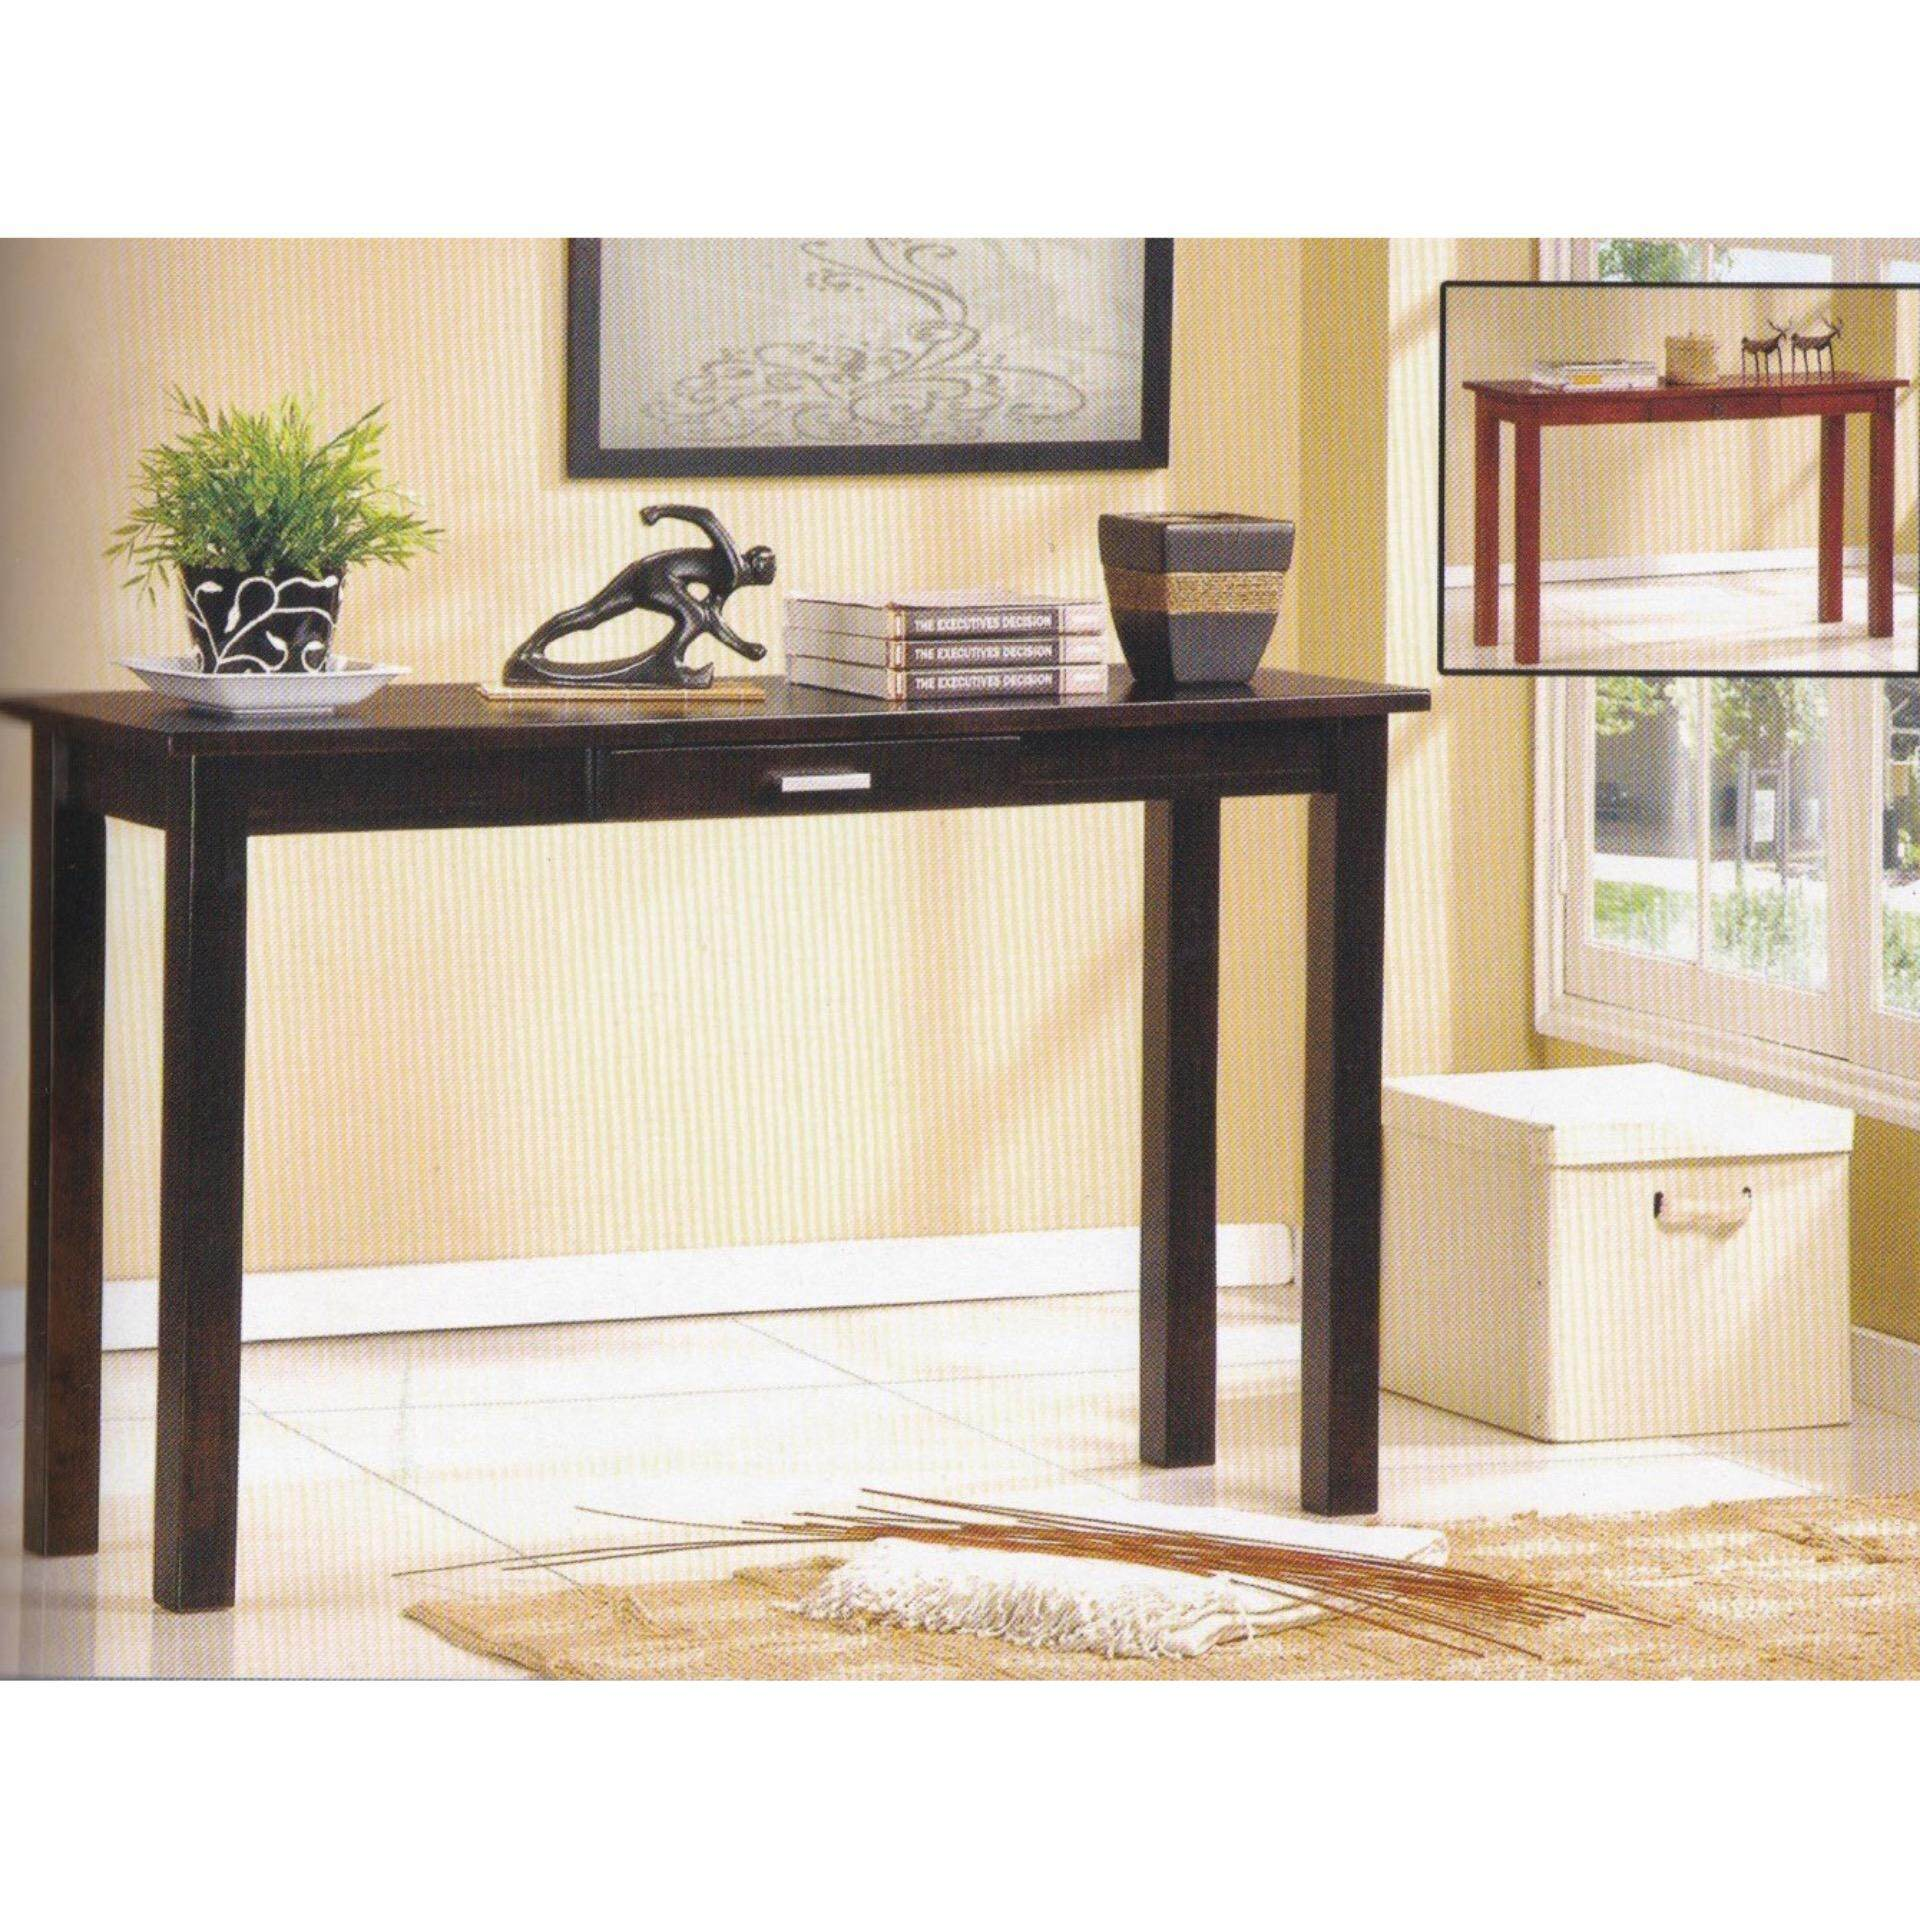 4816 Fully Solid Wood Console Table